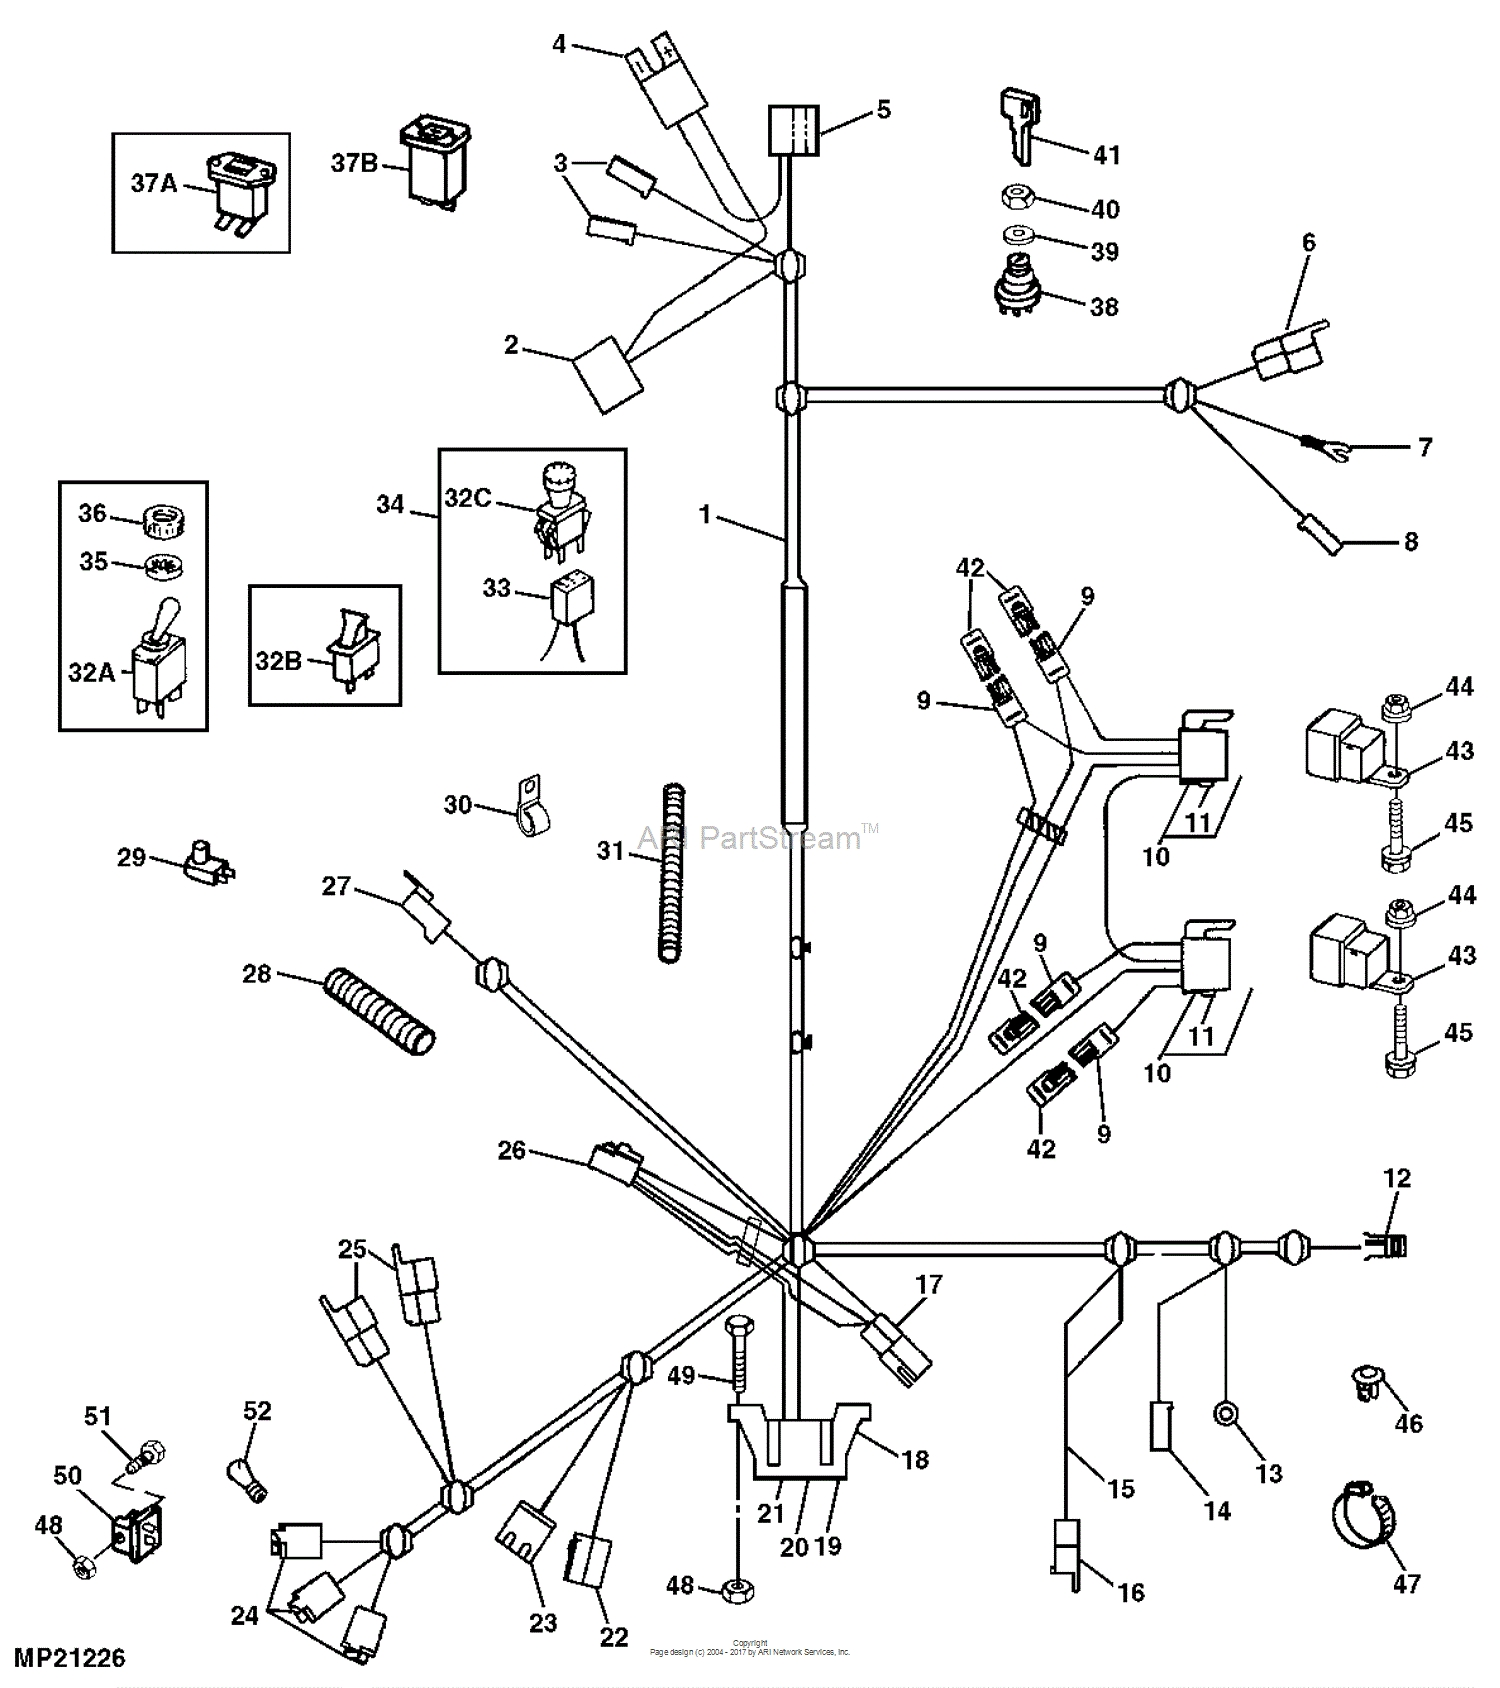 Wiring Diagrams John Deere Parts - Wiring Diagram M2 on